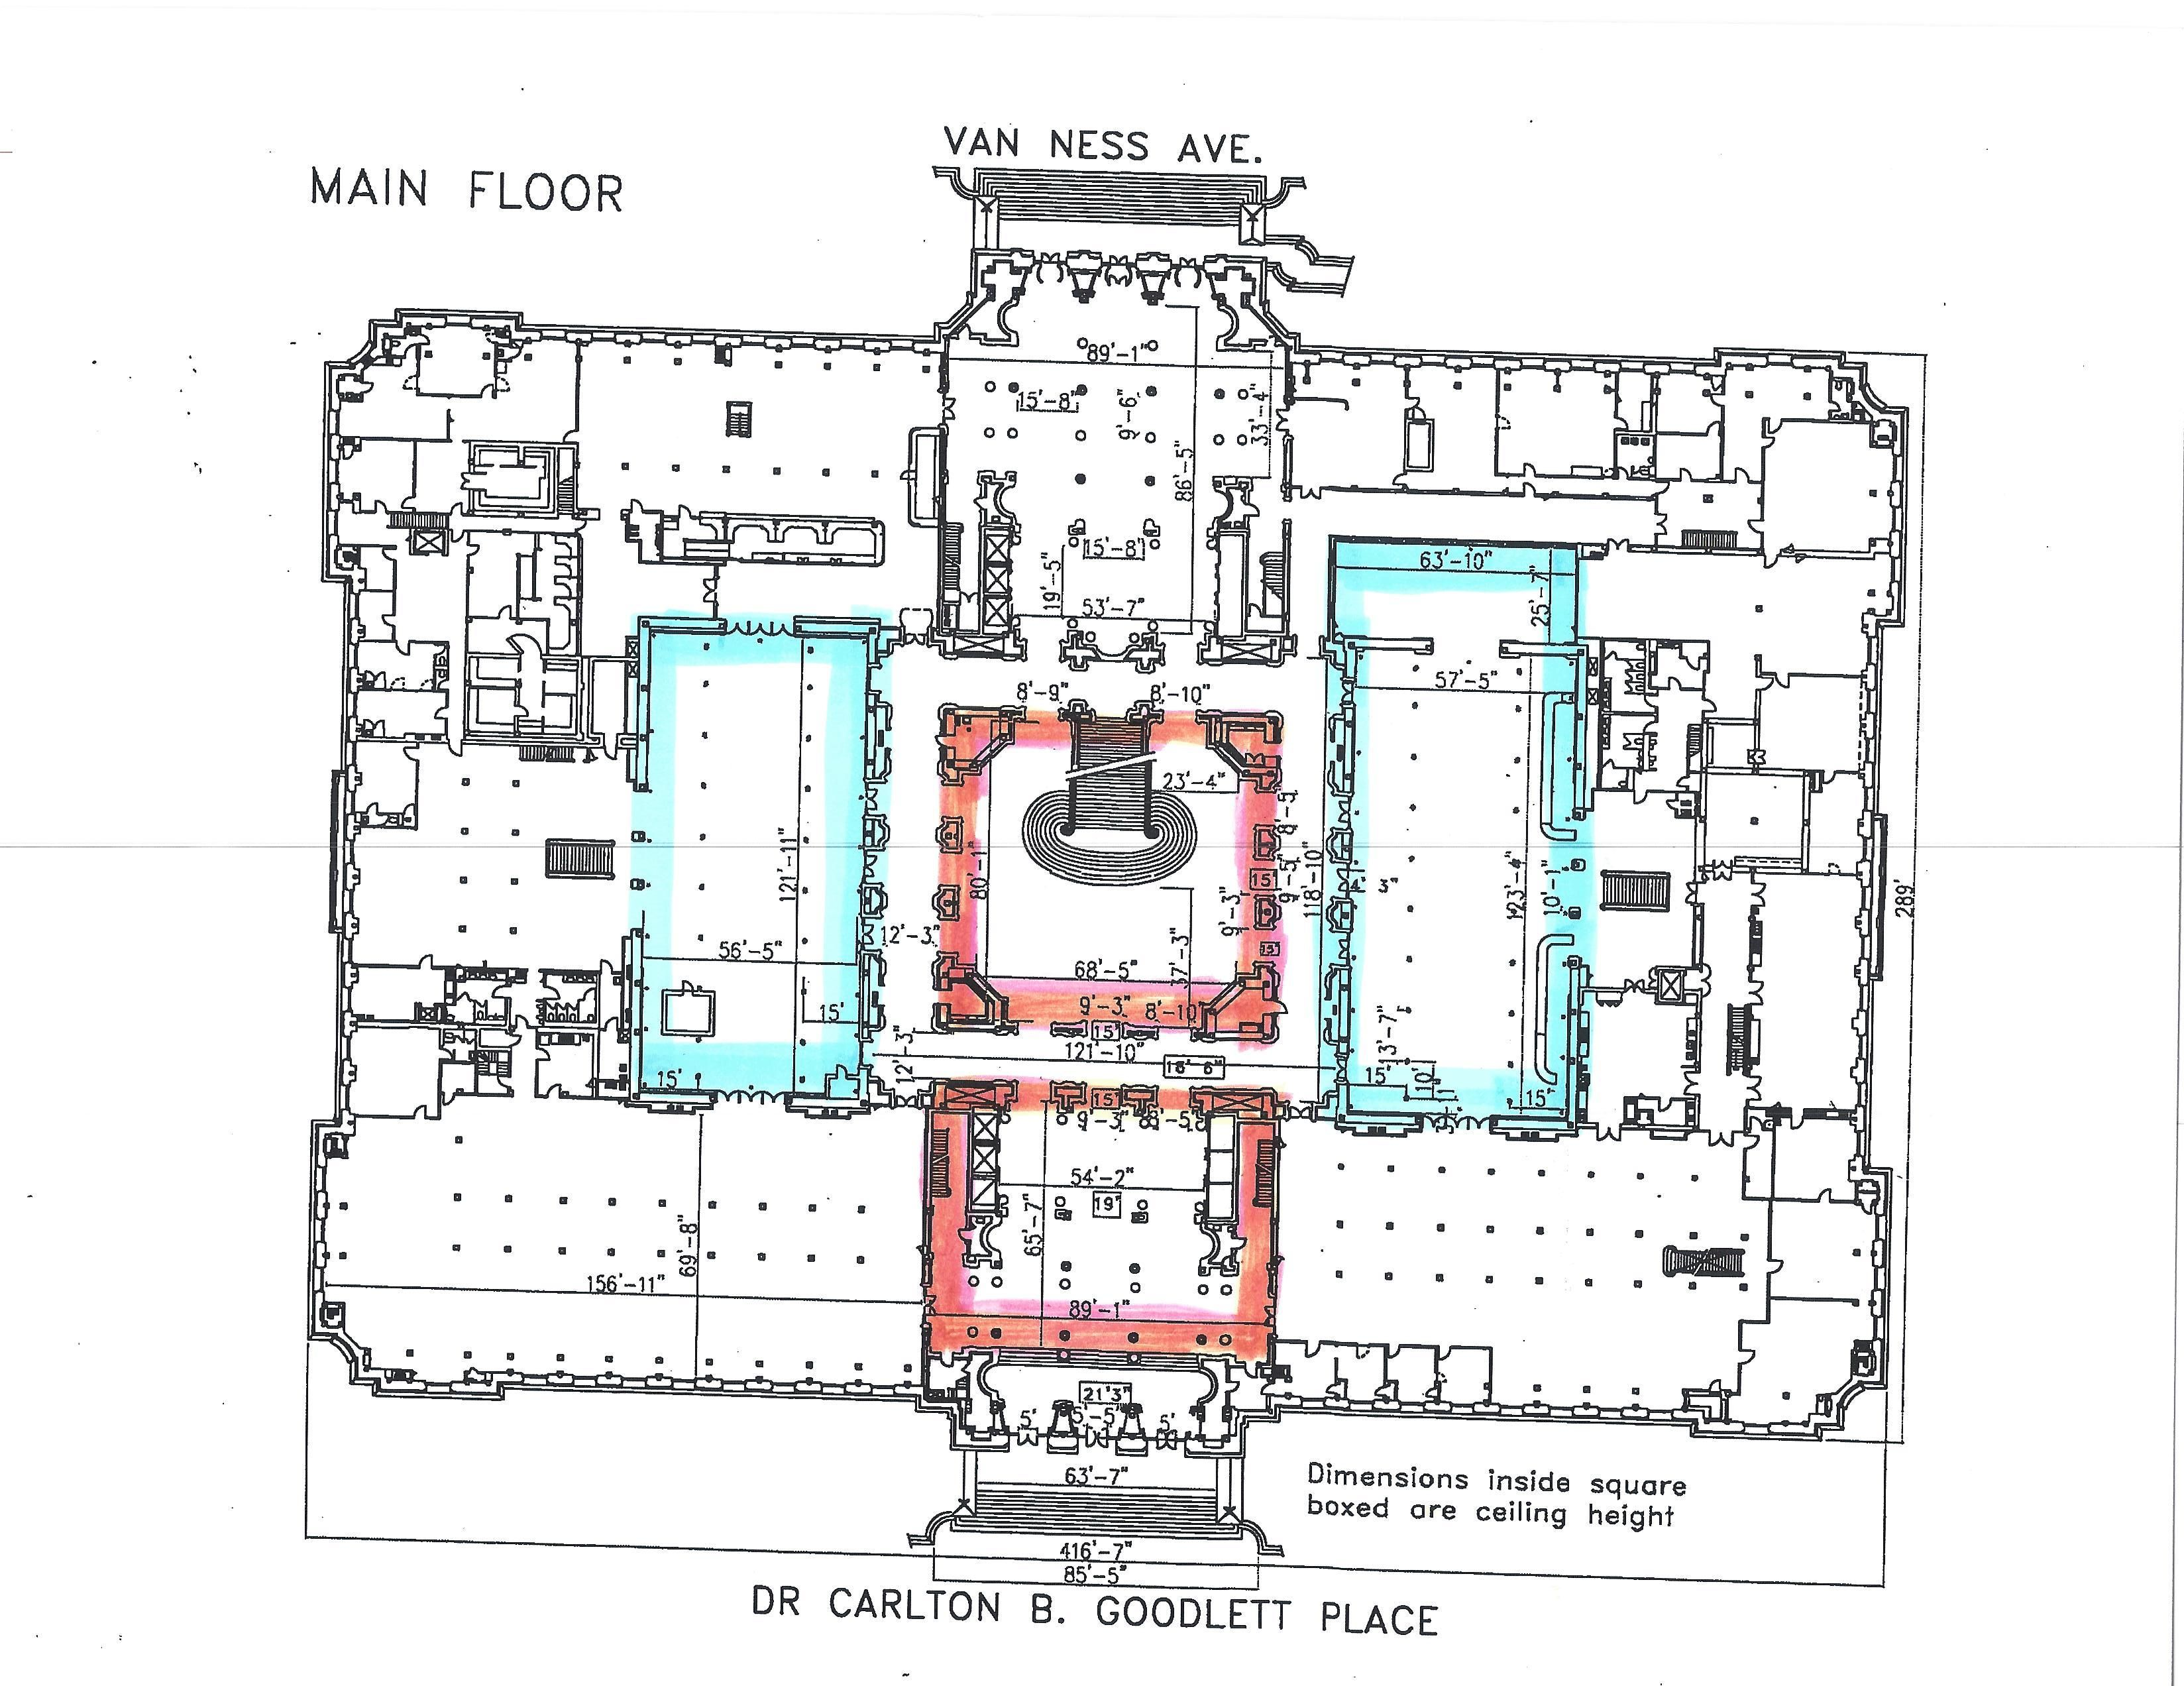 City Hall Floor Plan Hall Flooring Floor Plans Ceiling Height